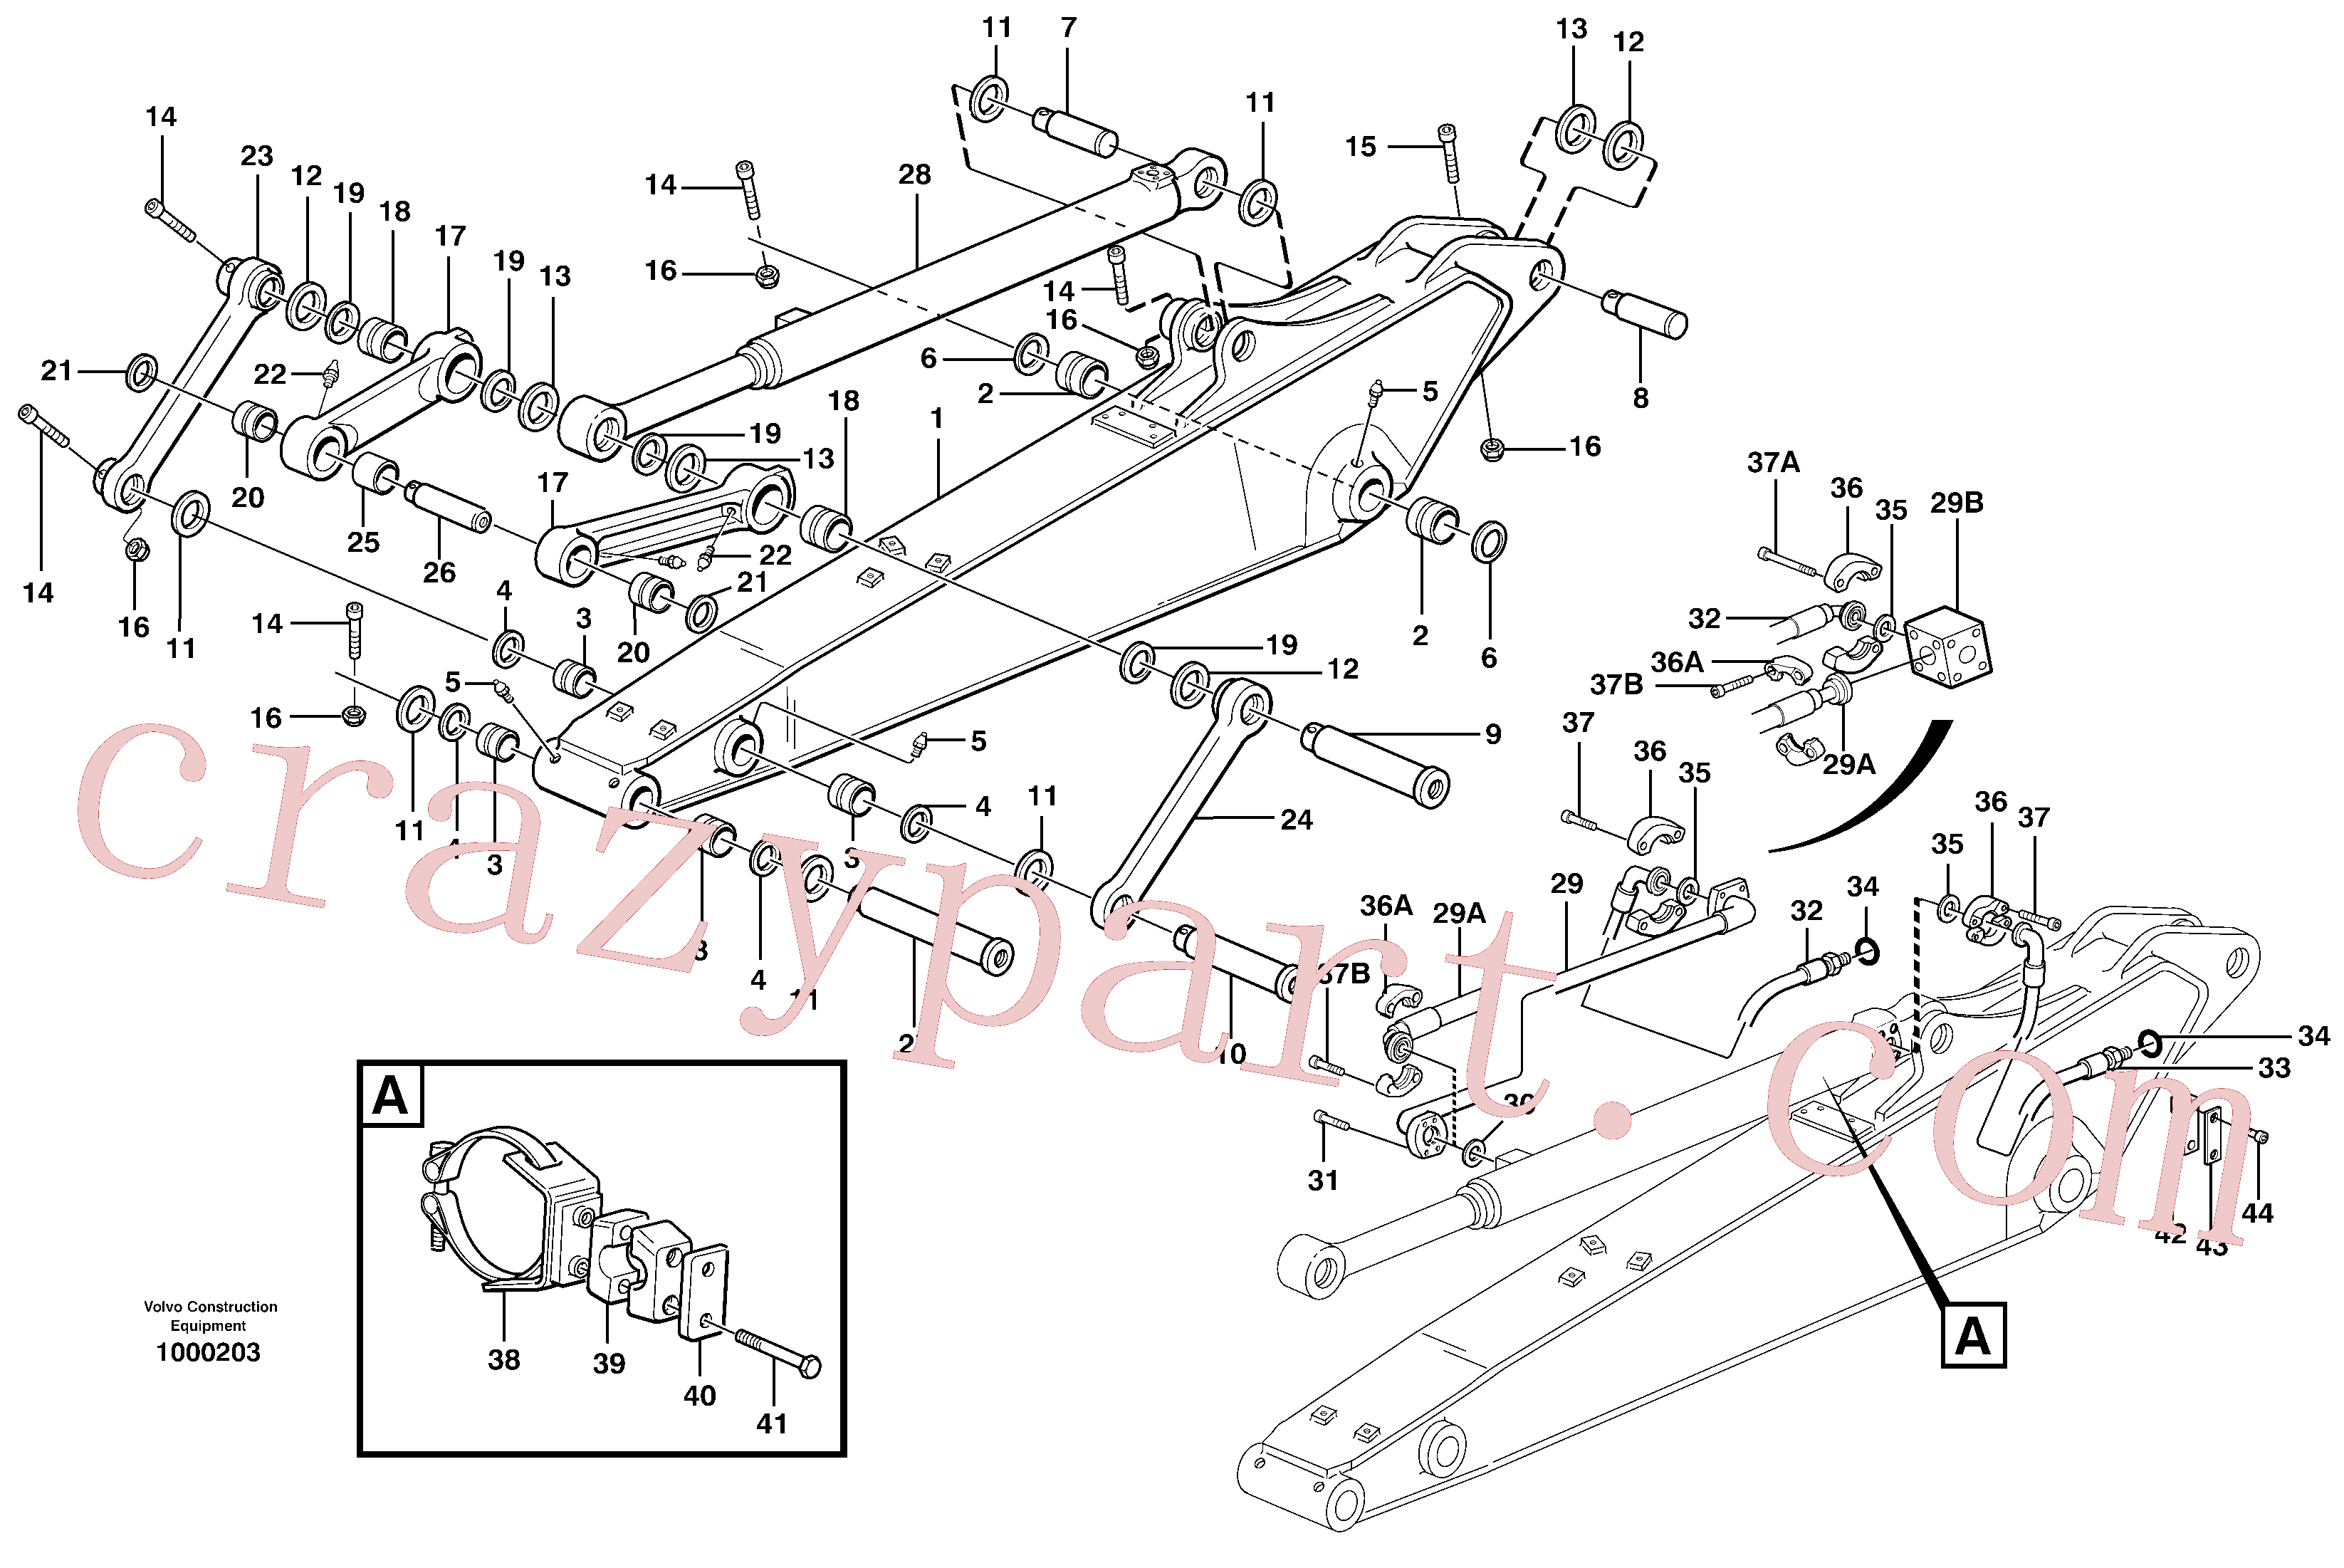 VOE14370081 for Volvo Dipper arm incl. connect.(1000203 assembly)